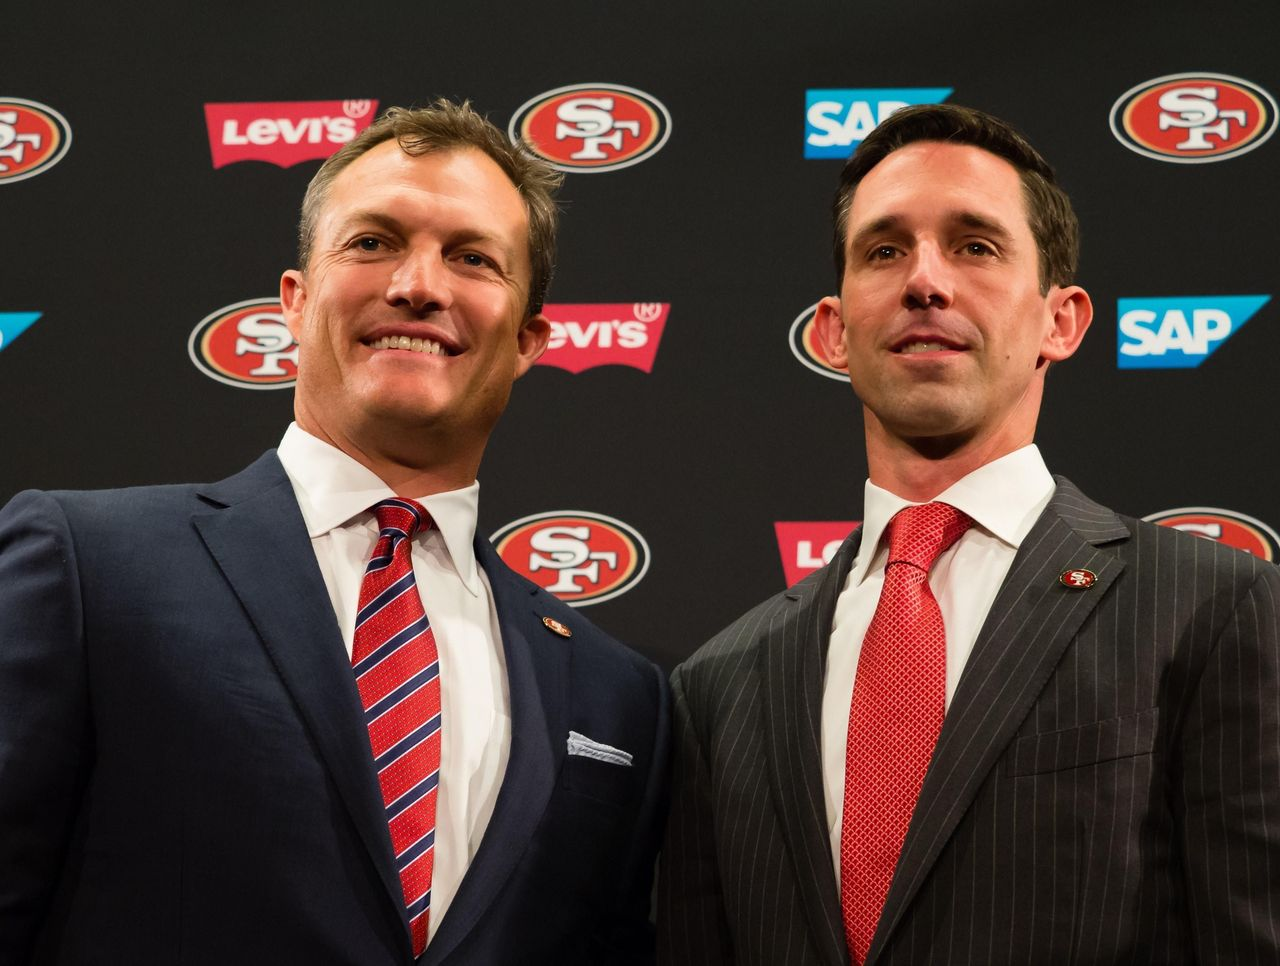 Cropped_2017-02-09t225410z_1773473785_nocid_rtrmadp_3_nfl-san-francisco-49ers-press-conference